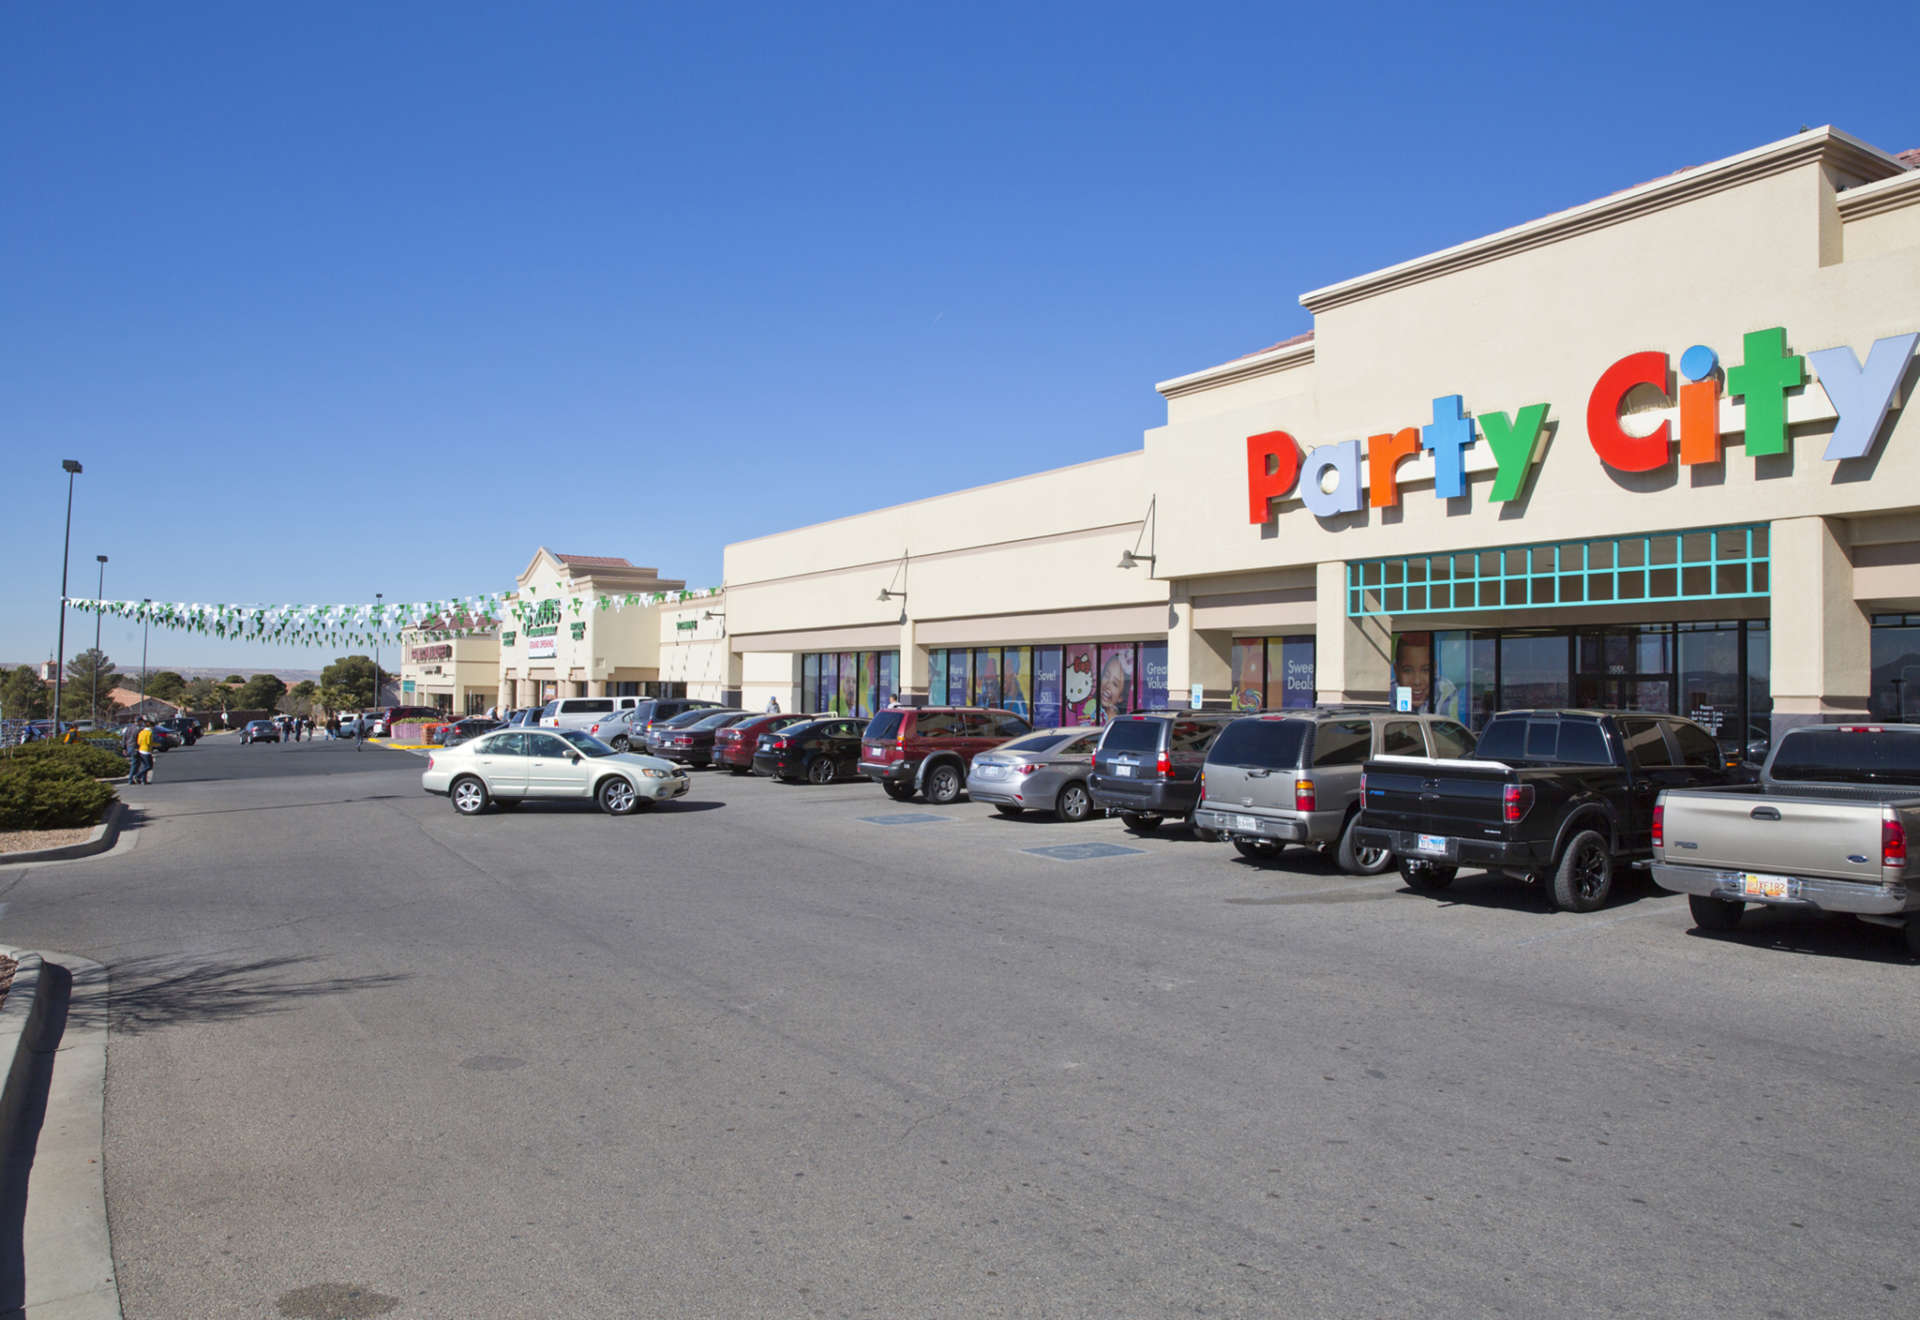 Party City is a privately held company in El Paso, TX and is a Single Location business. Categorized under Favors. Our records show it was established in and incorporated in Texas. Current estimates show this company has an annual revenue of and employs a staff of approximately